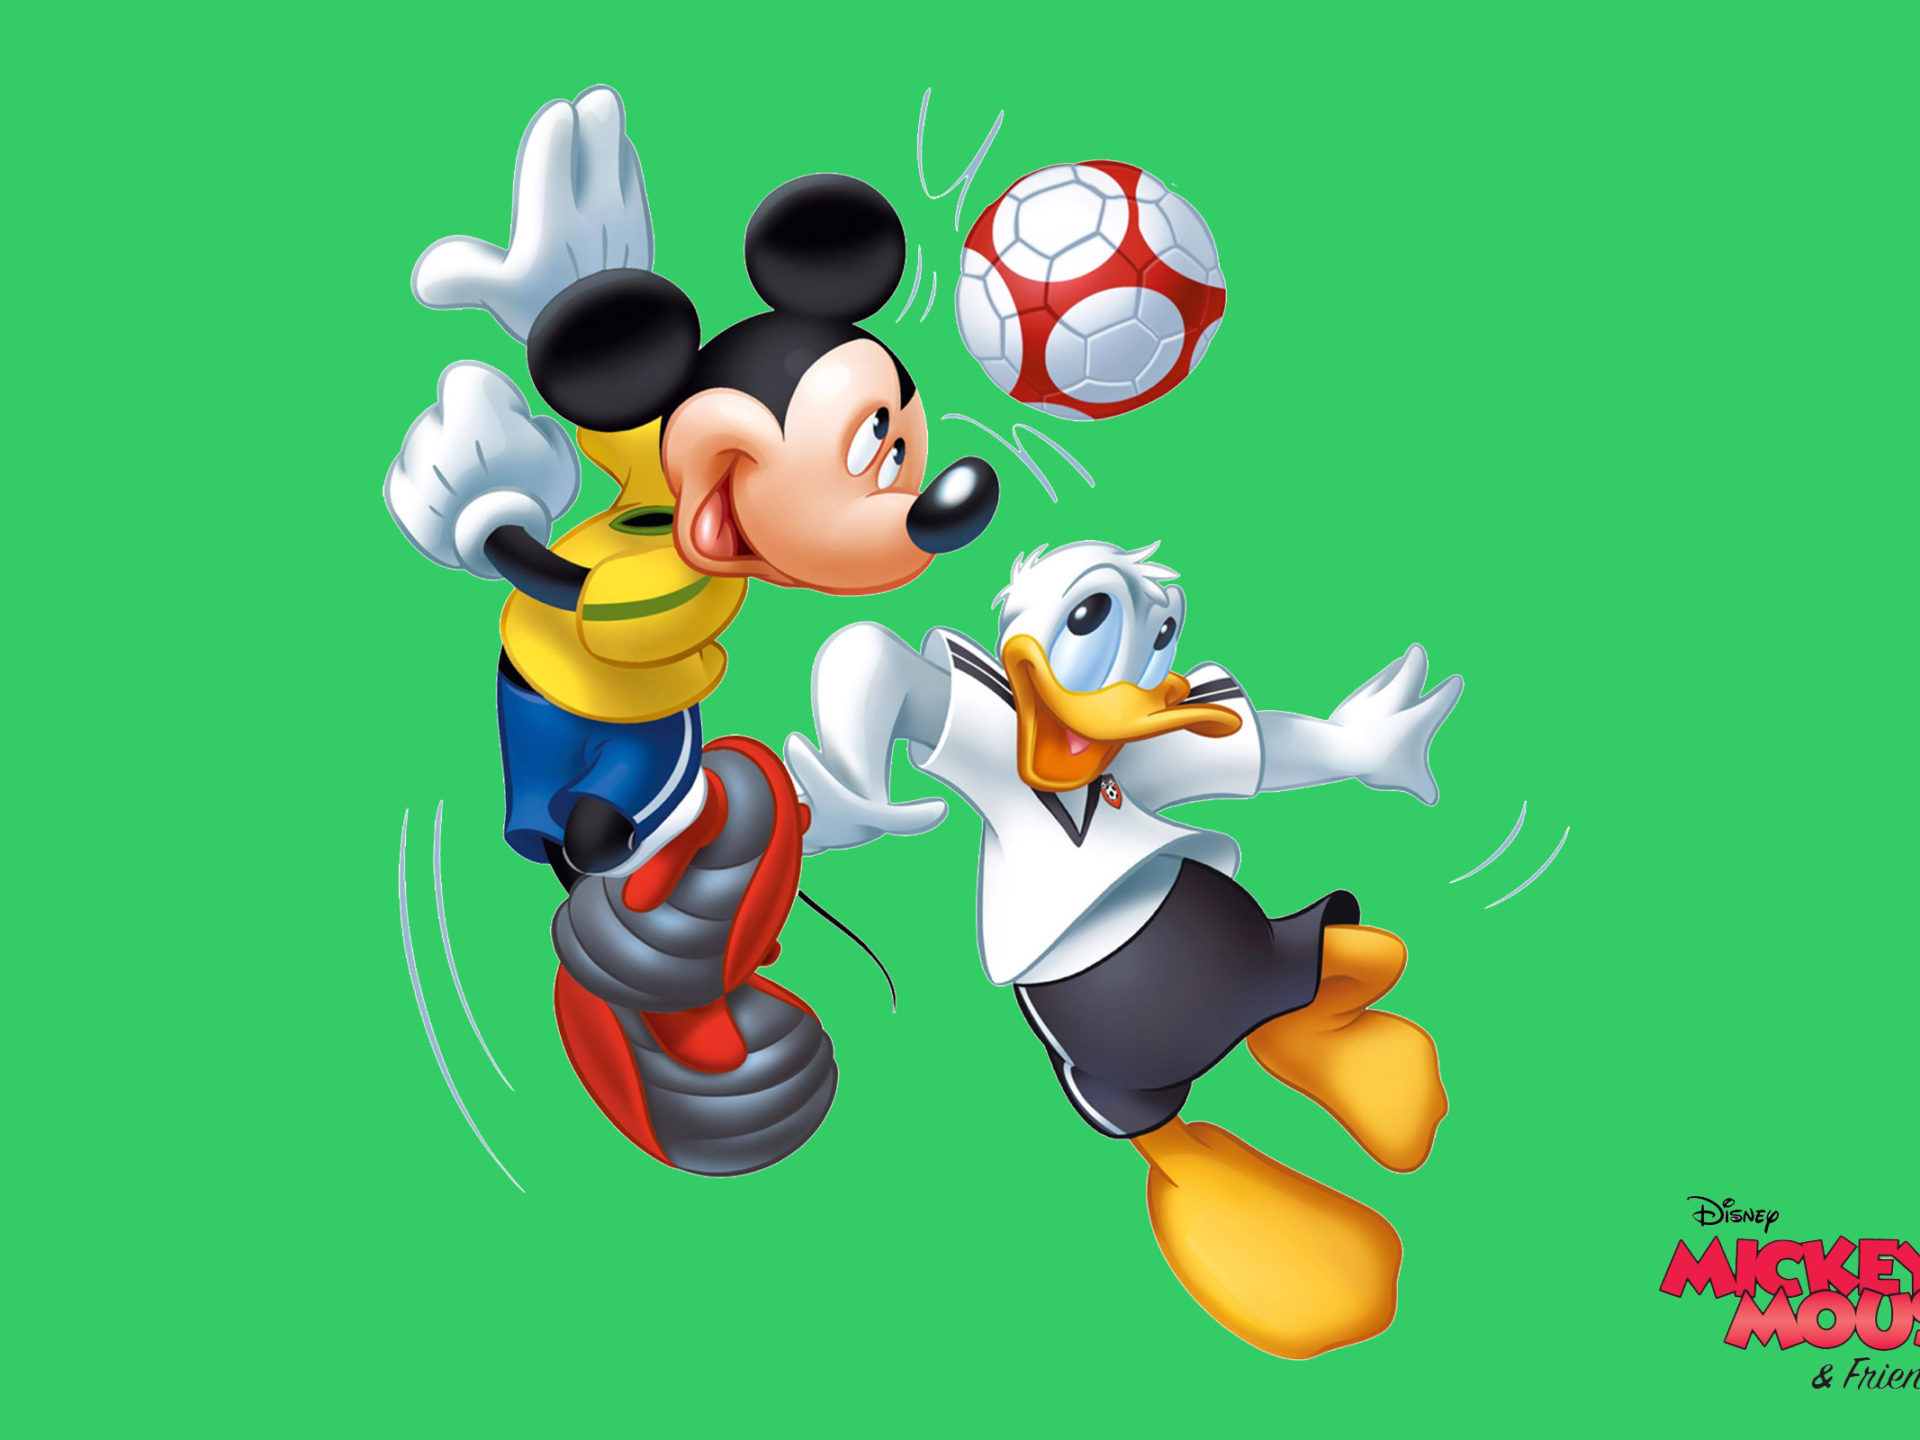 Disney Cars Wallpaper Free Download Mickey Mouse And Donald Duck Sports Recreation Football